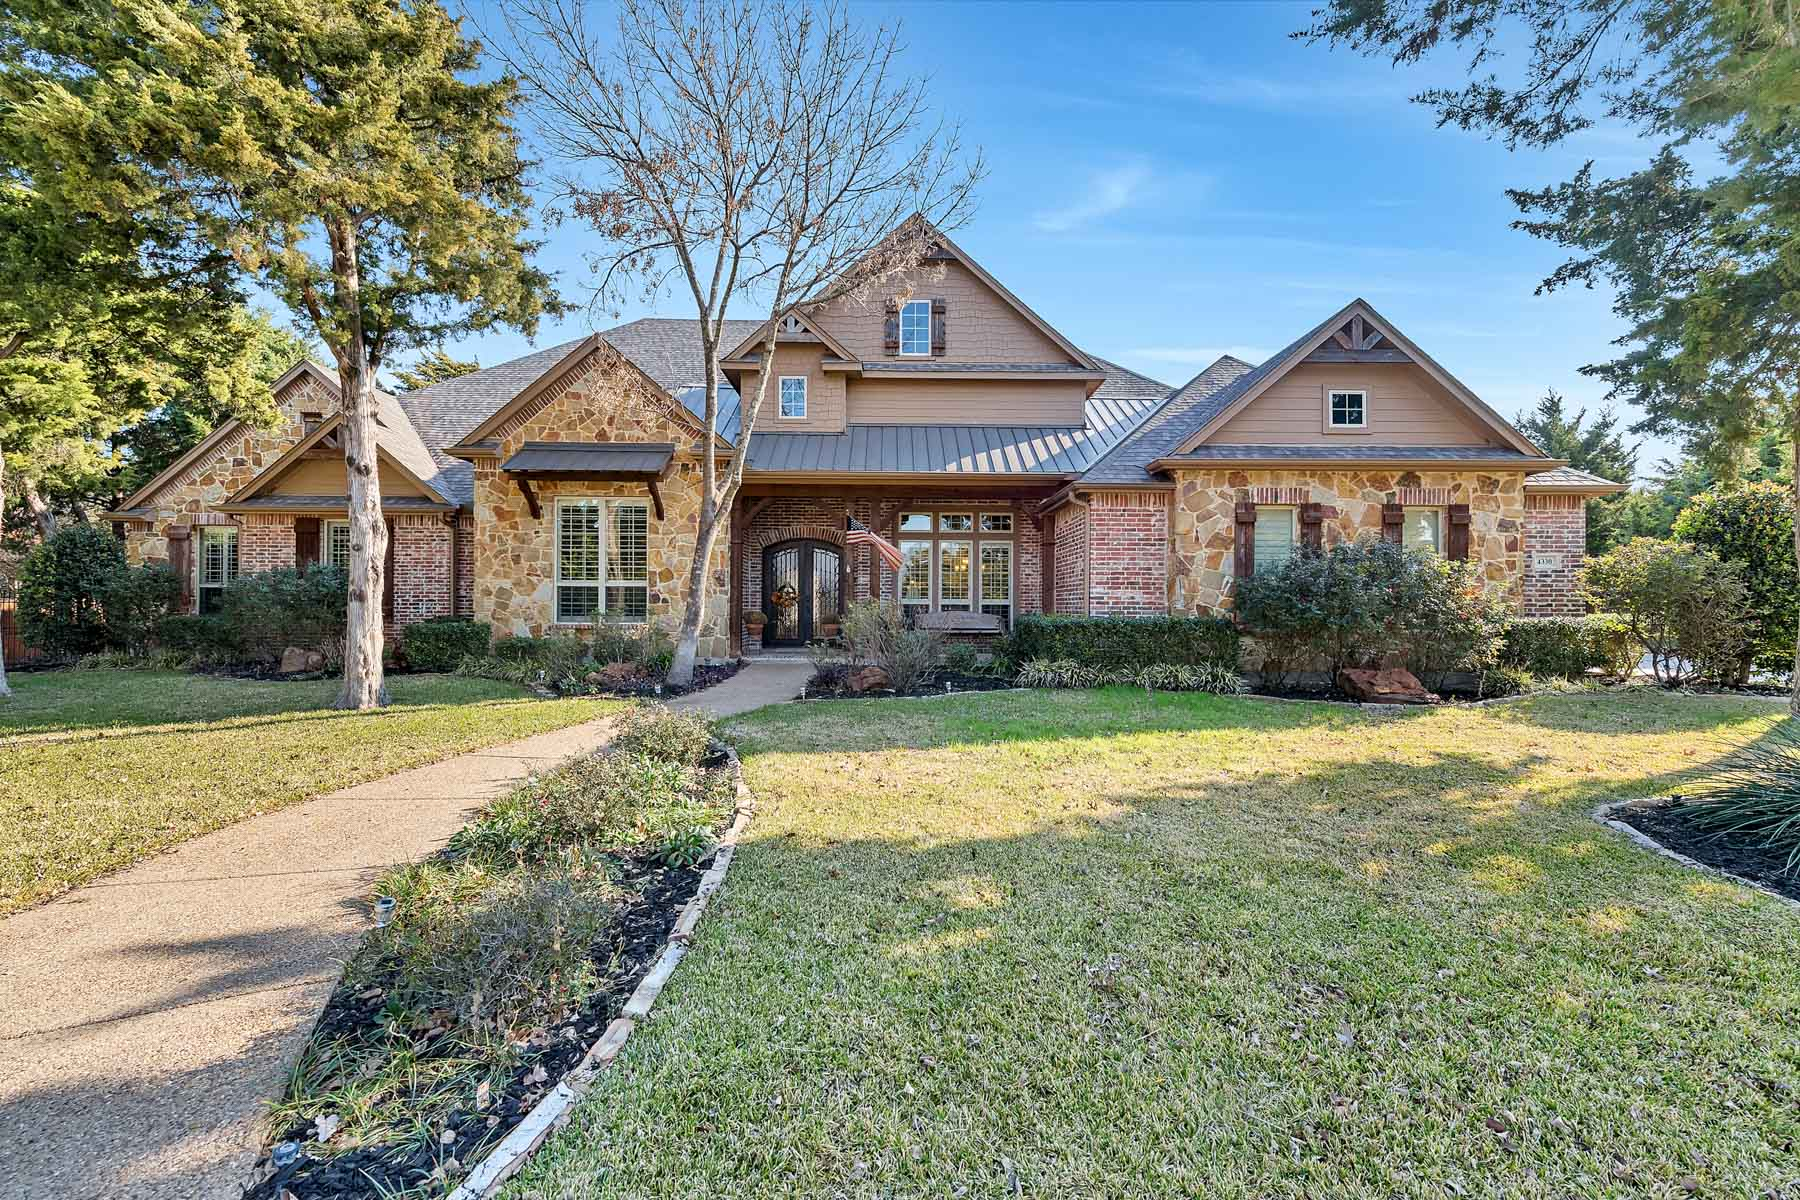 Single Family Home for Sale at 4330 Powers Branch Drive 4330 Powers Branch Drive Midlothian, Texas 76065 United States